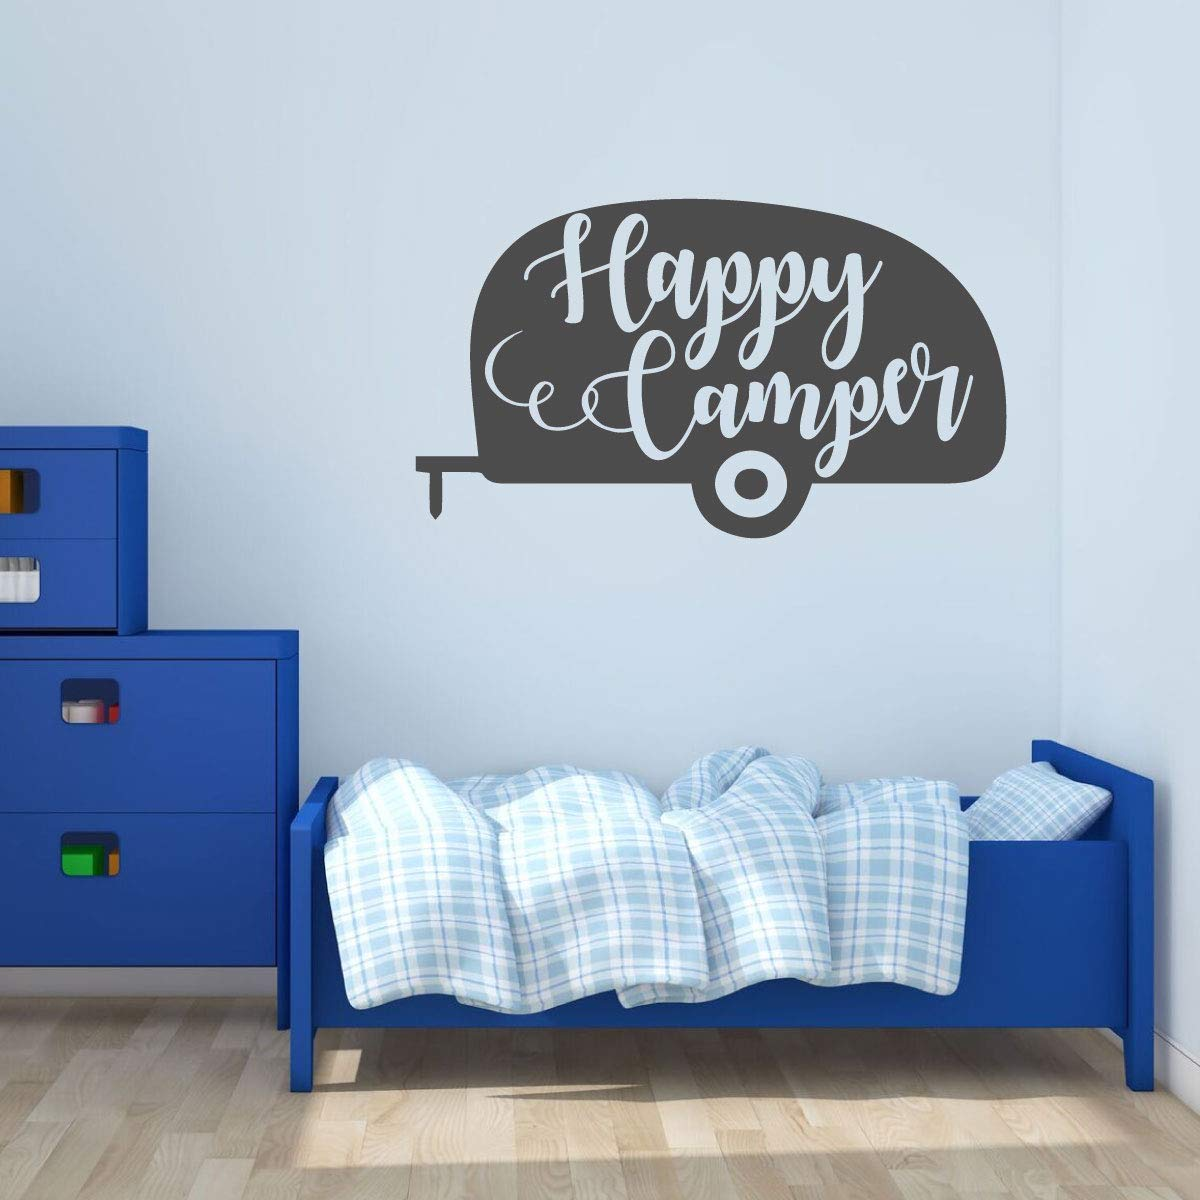 ONE OLD CAMPER Vinyl Saying Wall Decor Lettering Decal